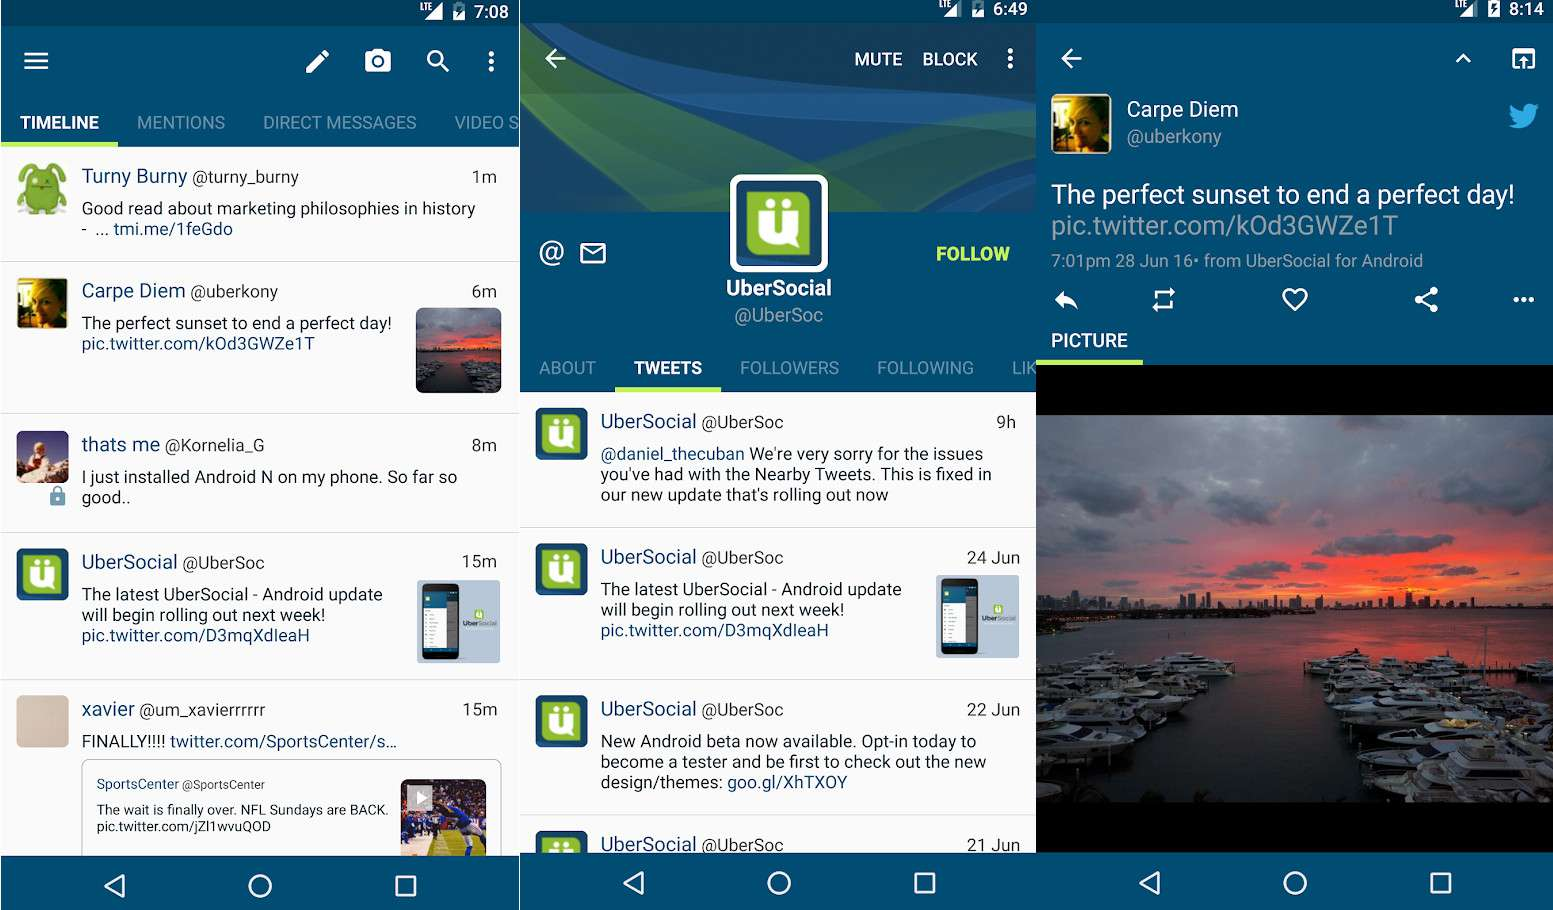 A Twitter profile and feed in the UberSocial app